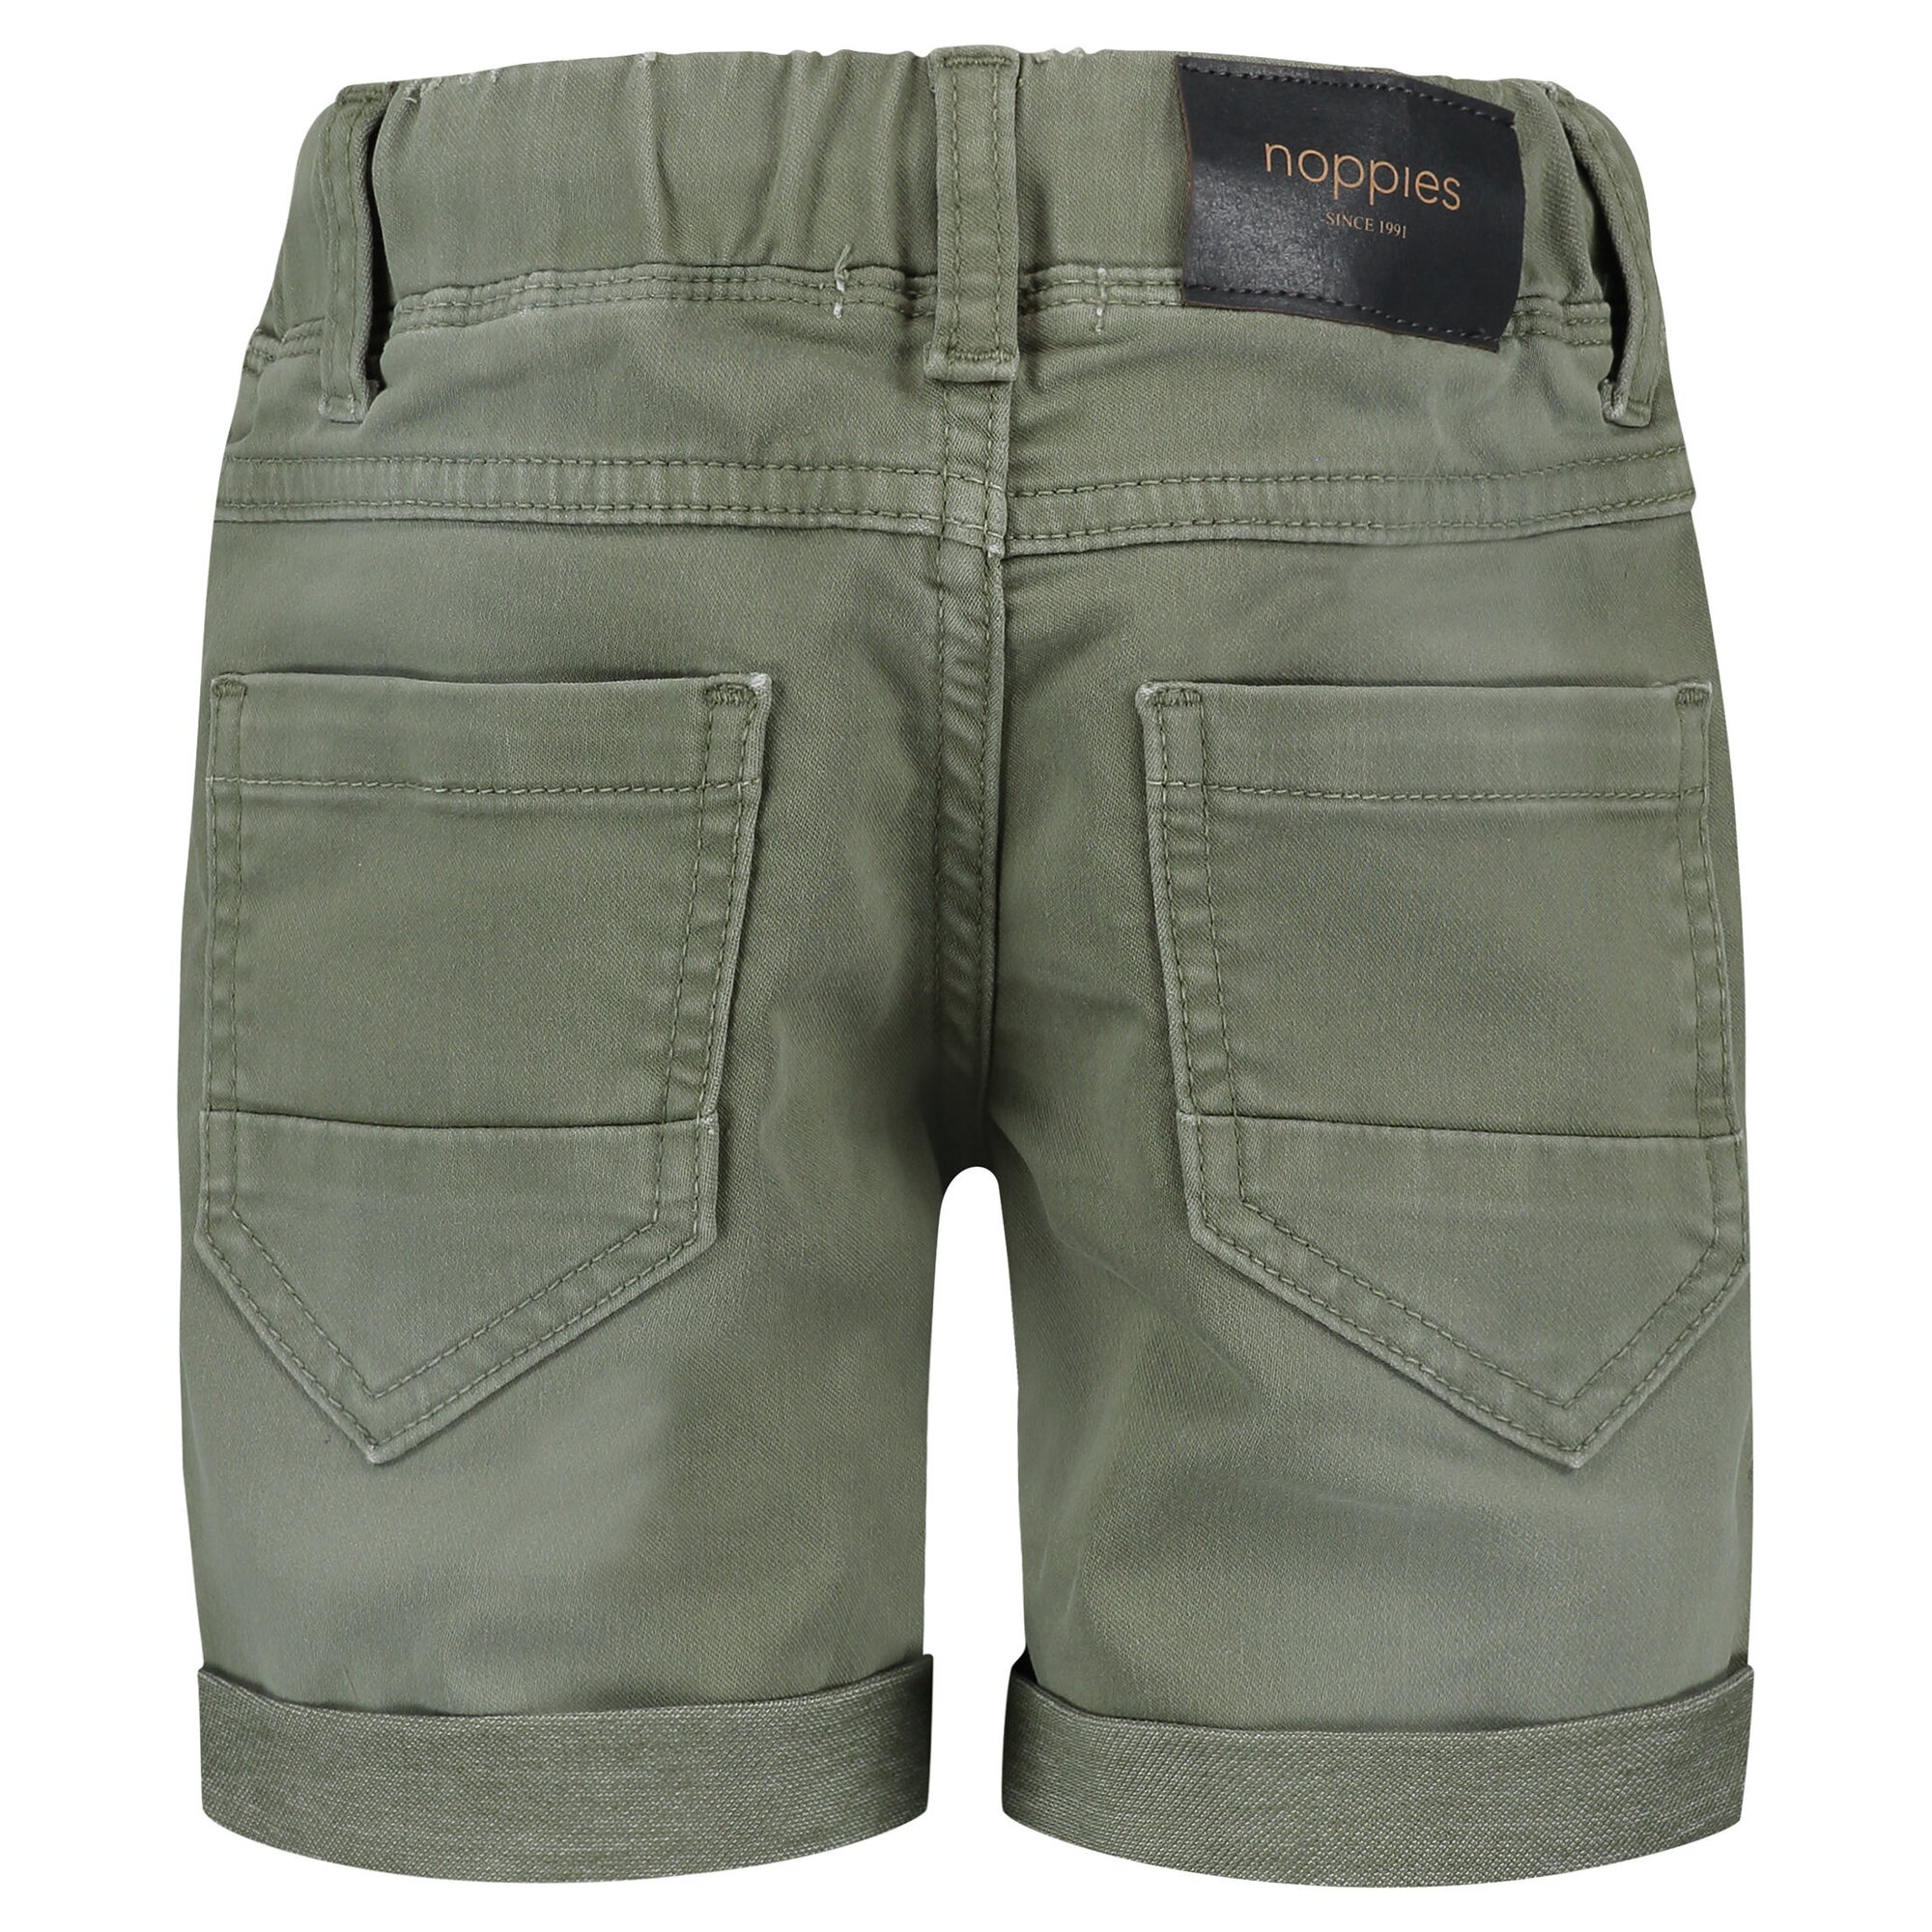 noppies-jeans-shorts-snyder